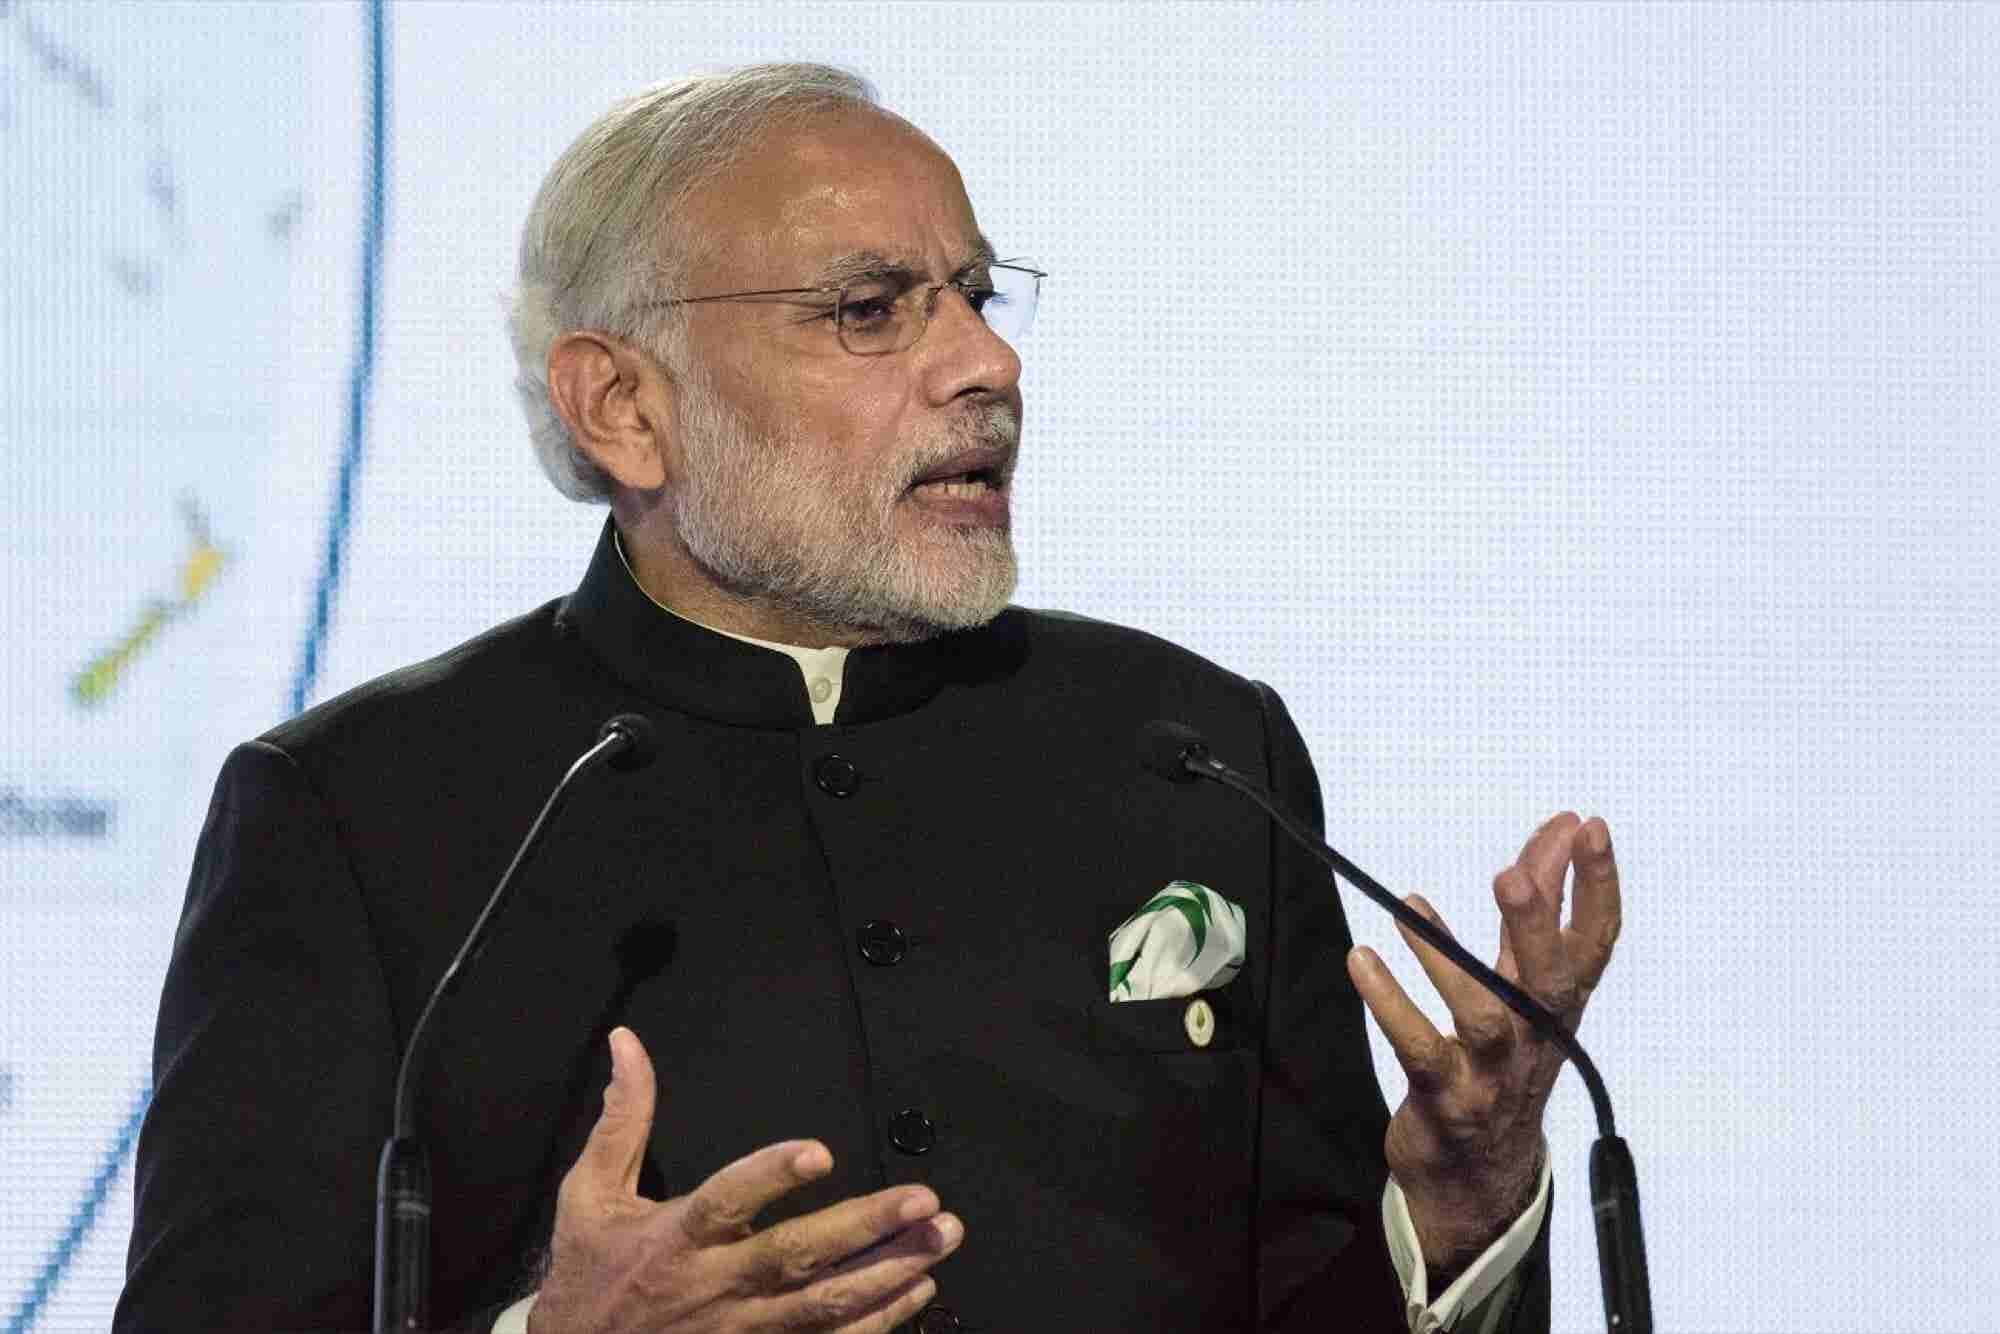 Prime Minister Narendra Modi Says Entrepreneurs Need the 3Cs for Success